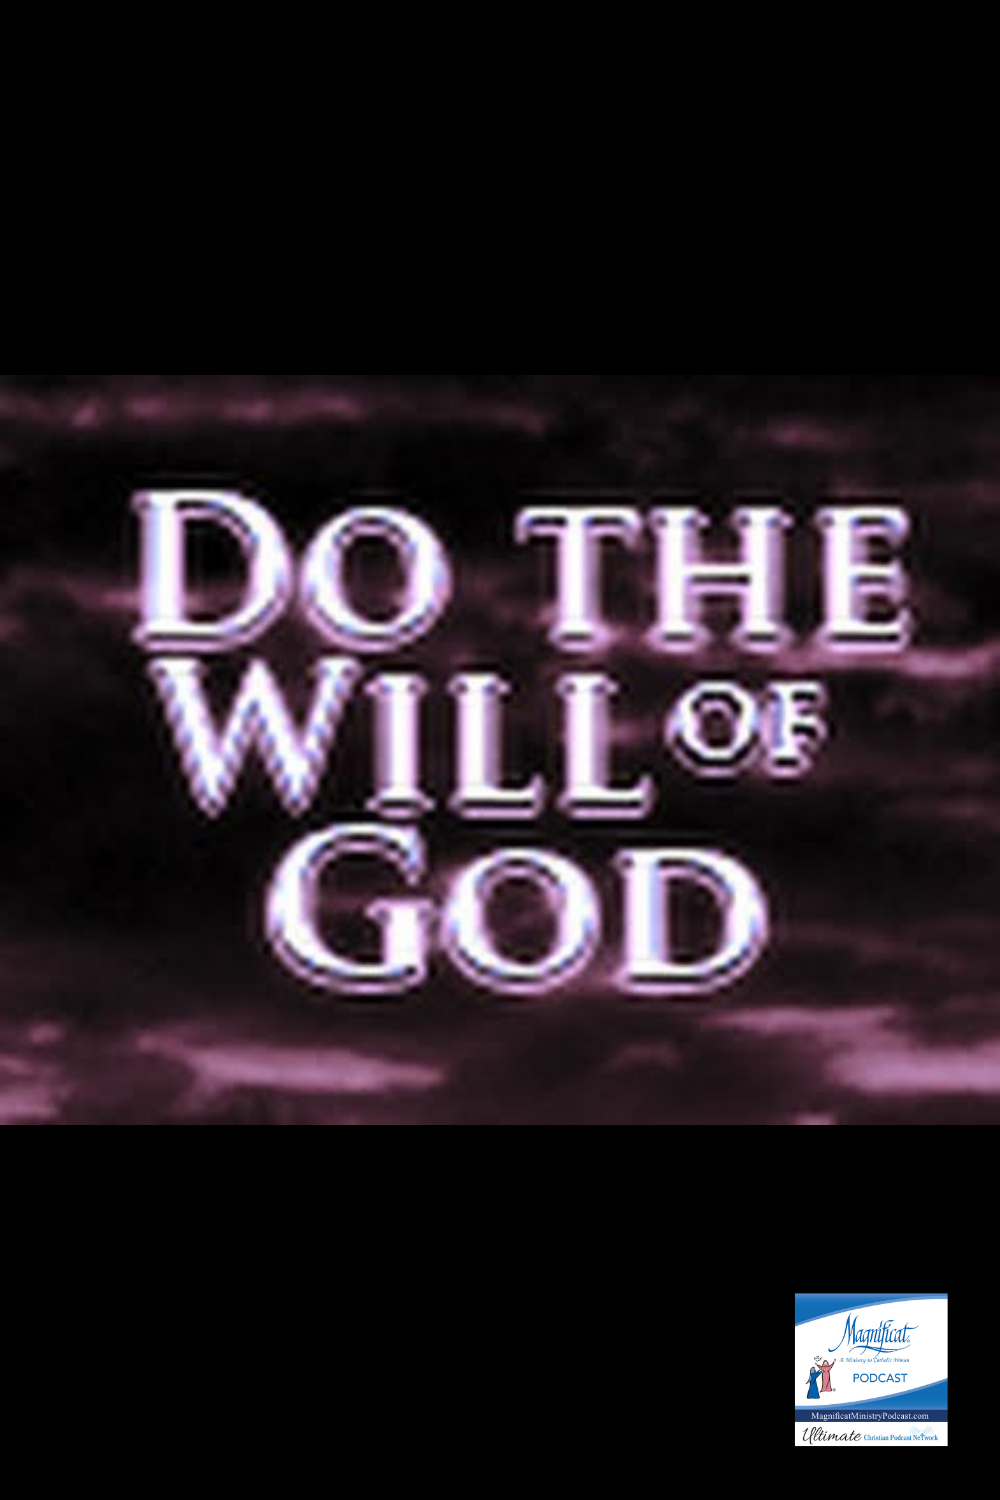 A Moment in Scripture- 'Doing God's Will' by Deacon David Hockwalt